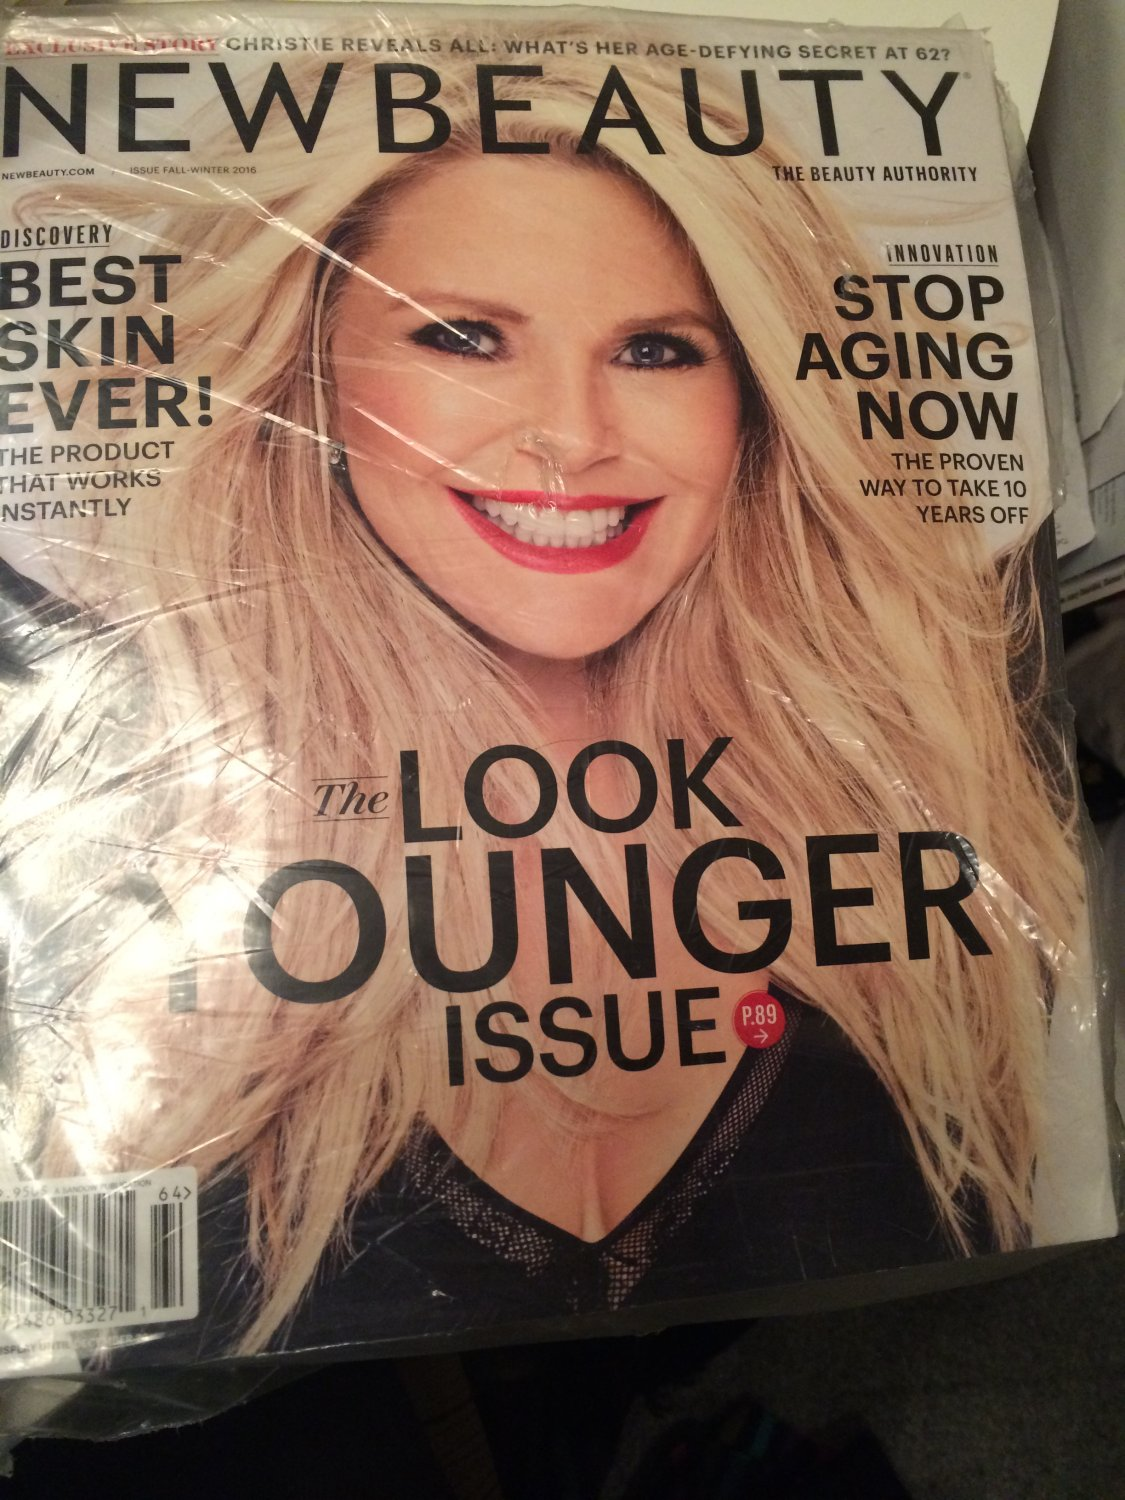 New Beauty Magazine Fall Winter 2016 - The Look Younger Issue (Christie Brinkley Cover)